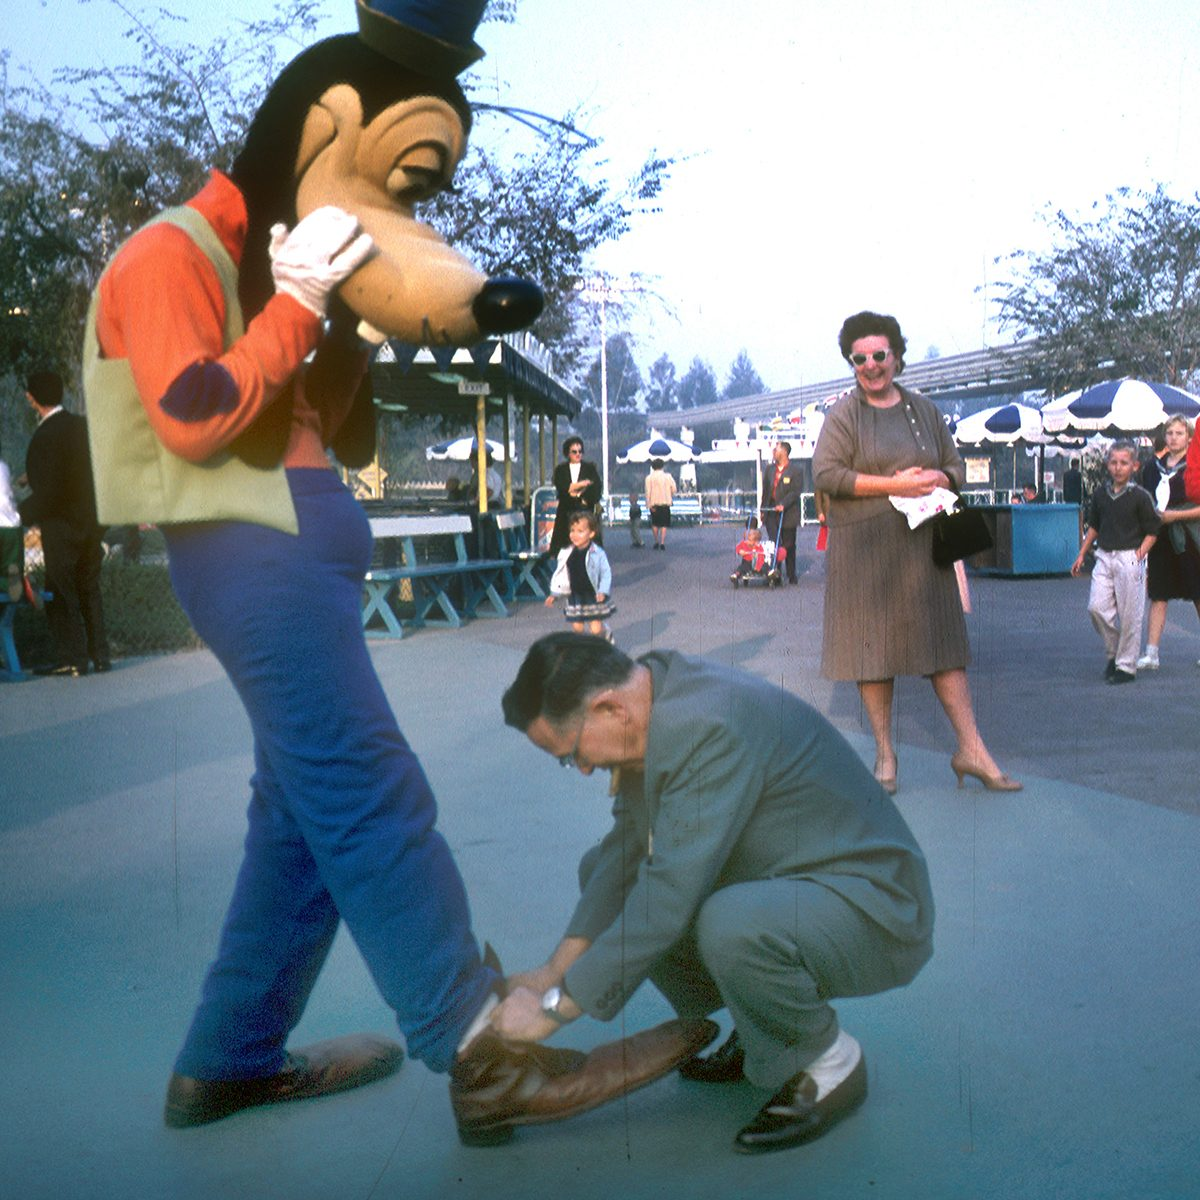 Disney character actor (played by photographer Tom Nebbia), dressed as Goofy, holds out his leg as a tourist ties his shoelaces at Disneyland, Anaheim, California, January 1962. (Photo by Tom Nebbia/Corbis via Getty Images)